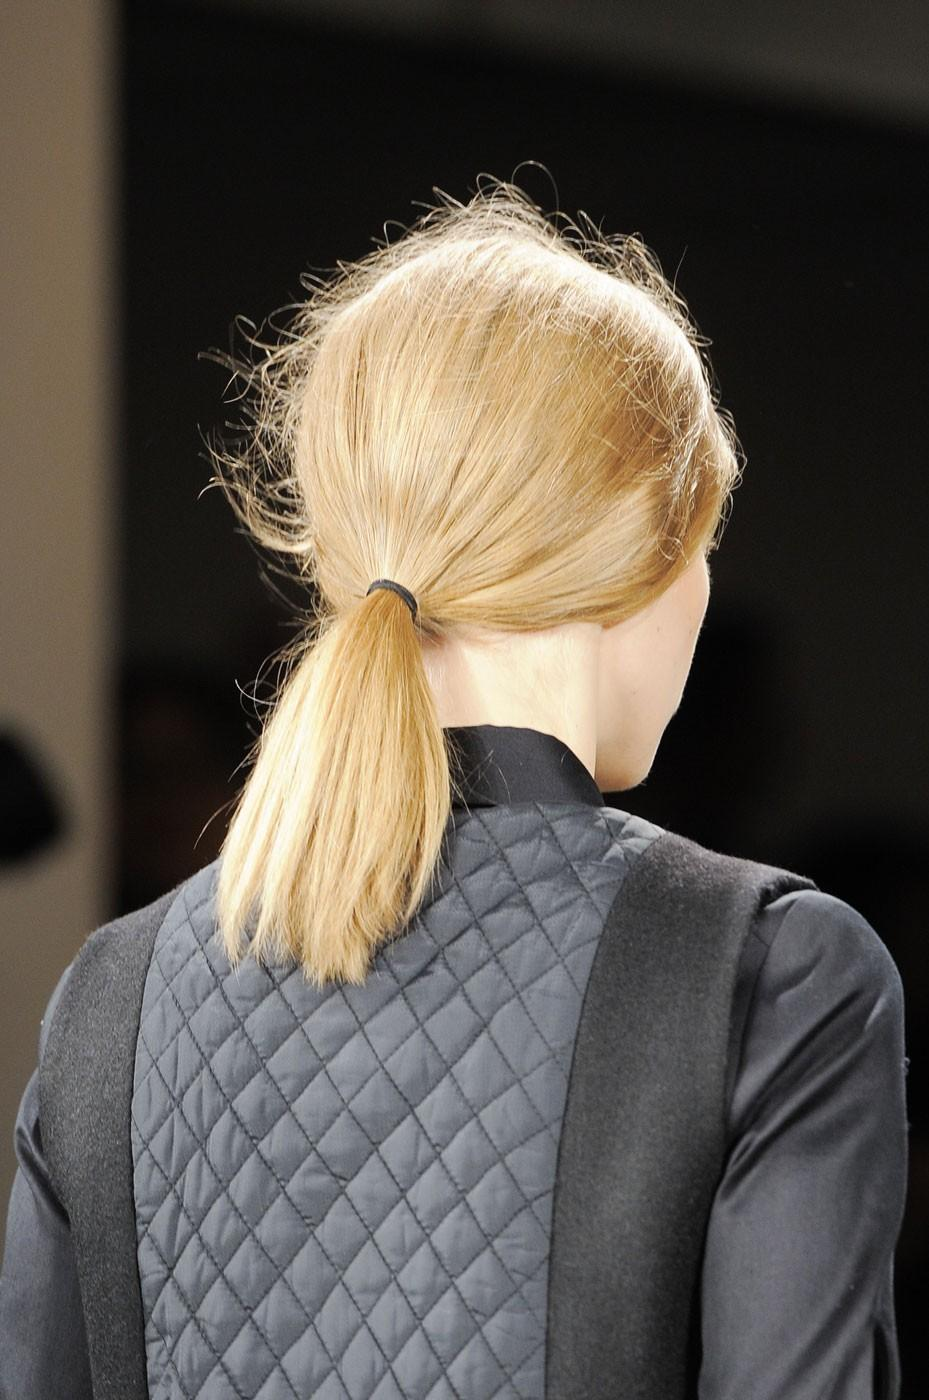 """<div class=""""caption-credit""""> Photo by: Stylecaster Pictures</div>Suno's collection was all about powerful armor, and a low ponytail is a statement of strength for women. <br> <br> <a href=""""http://beautyhigh.com/new-york-fashion-week-beauty-trends-you-can-wear/"""" rel=""""nofollow noopener"""" target=""""_blank"""" data-ylk=""""slk:See 25 More Wearable Trends From NYFW!"""" class=""""link rapid-noclick-resp""""><b>See 25 More Wearable Trends From NYFW!</b></a>"""